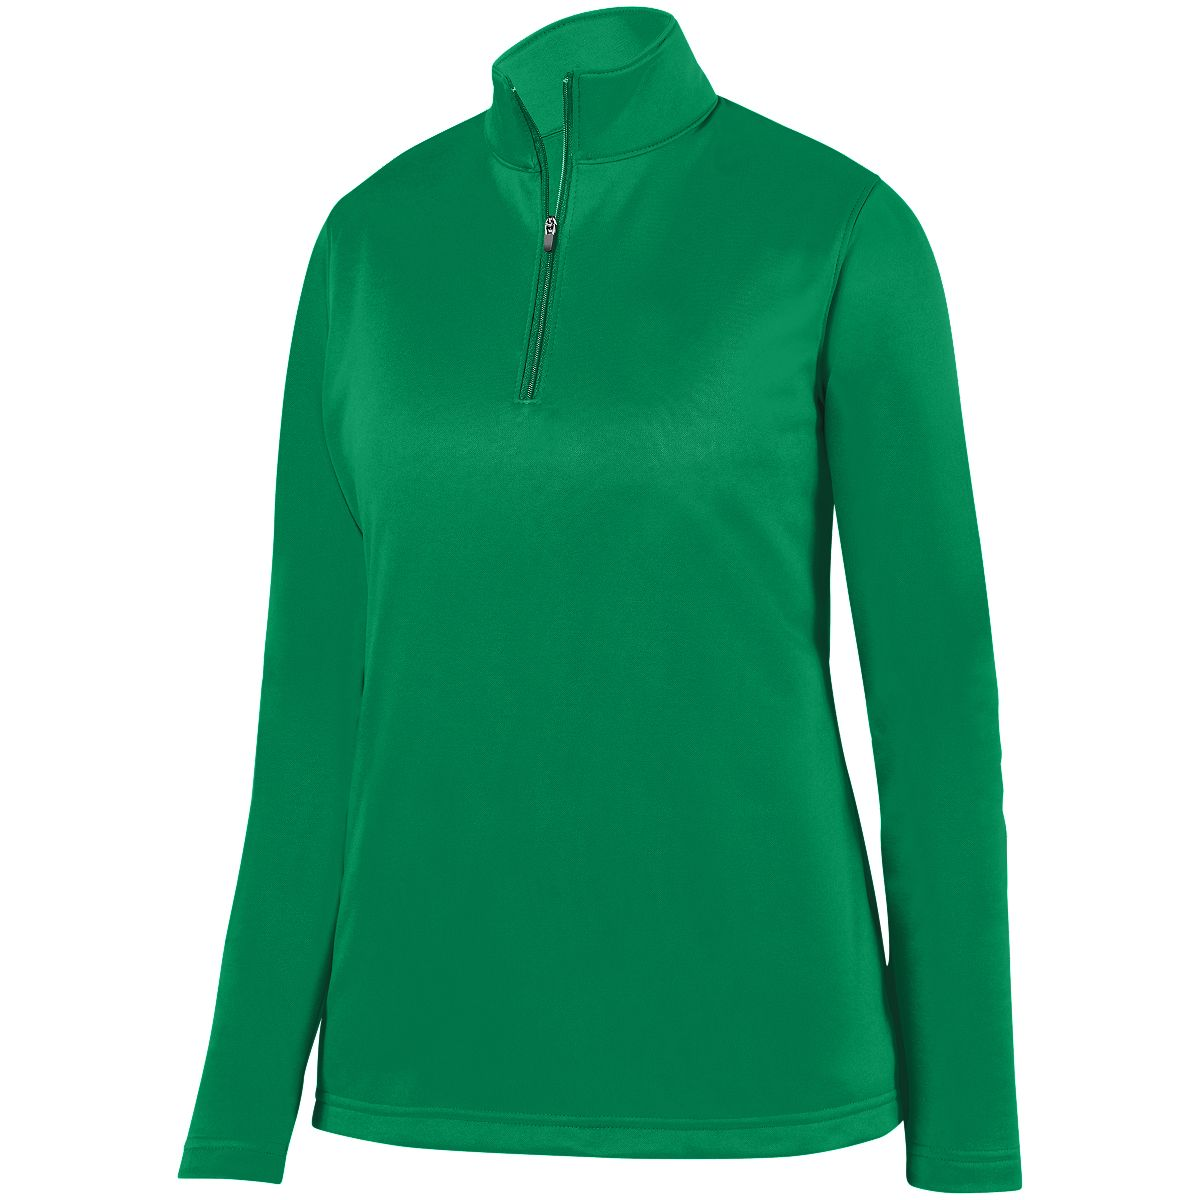 Augusta Ladies Wicking Fleece Pullover Kelly Xl - image 1 of 1